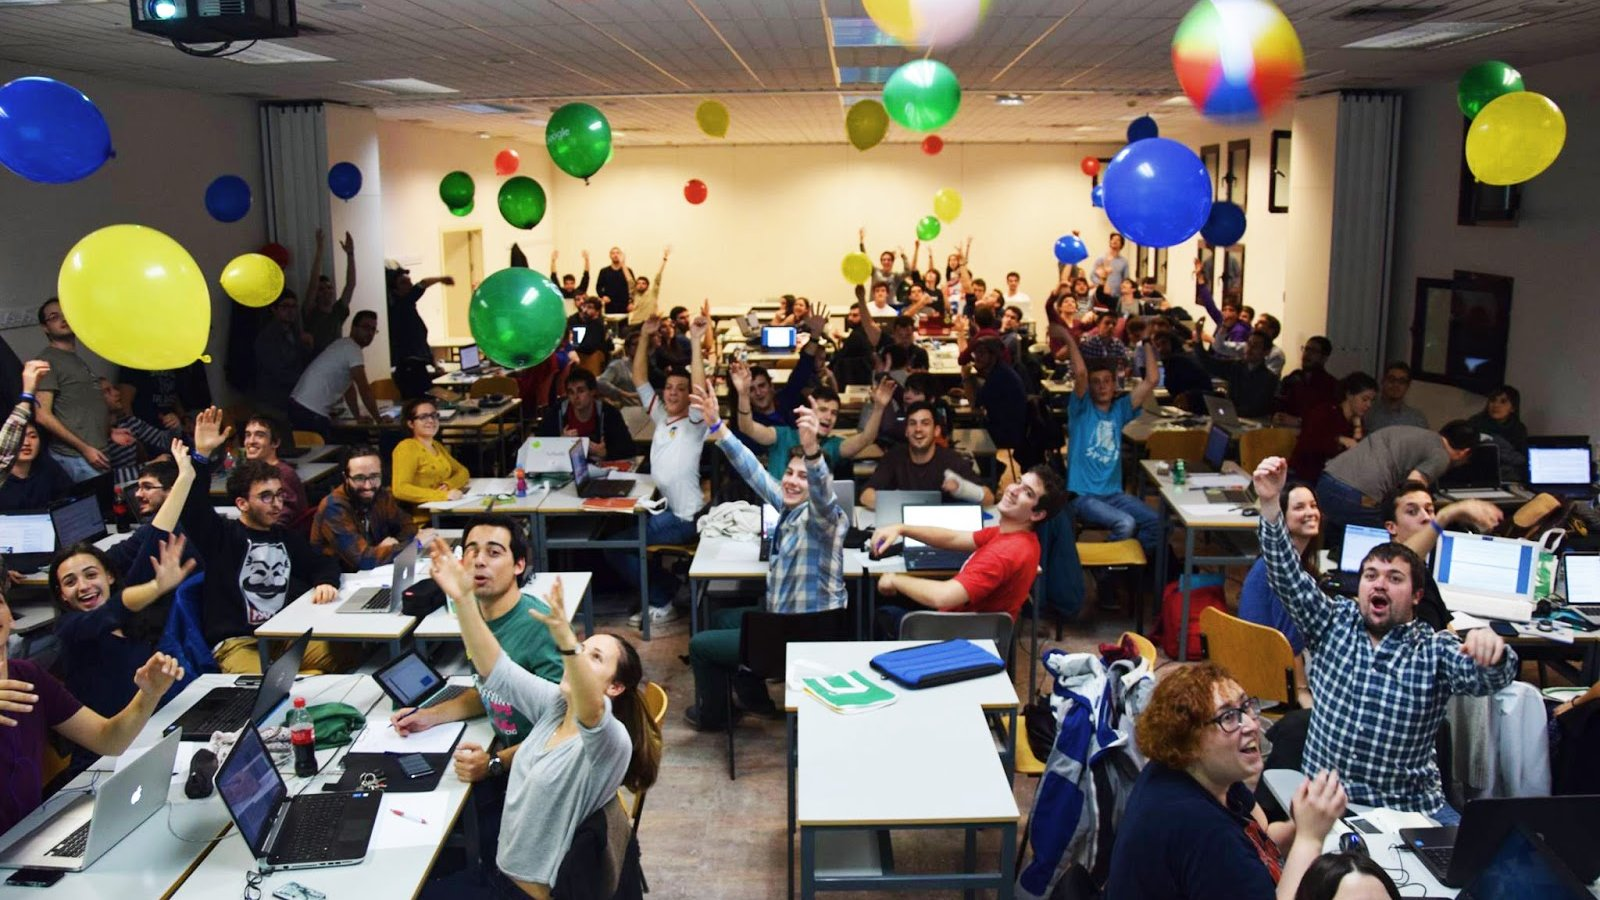 Students compete in the Online Qualification Round in February 2016 from a hub at Universidad Carlos III de Madrid in Spain